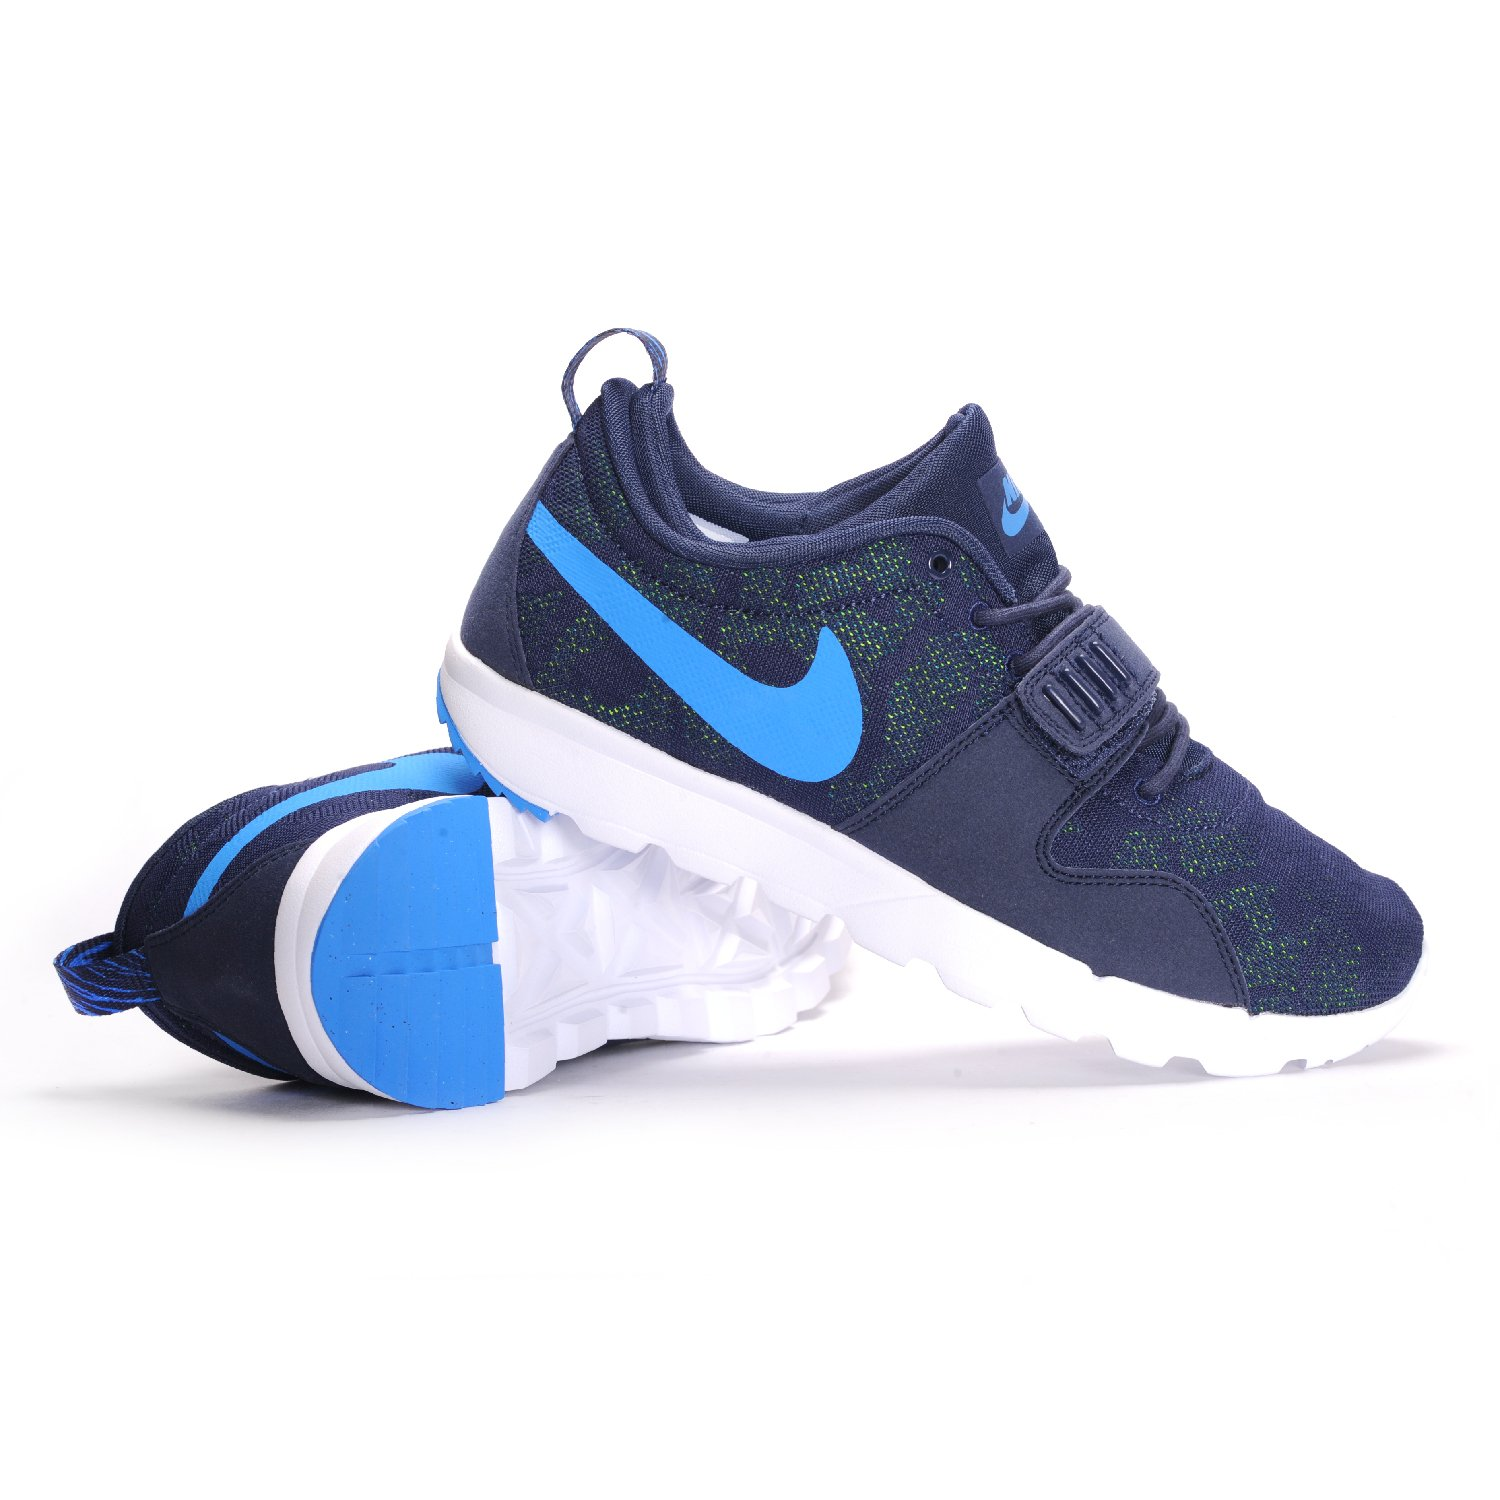 new products d55f0 c39f9 Galleon - NIKE Men s SB Trainerendor  Rip Reveal  Athletic Shoe Obsidian  White Rio Teal Photo Blue 12 D(M) US…